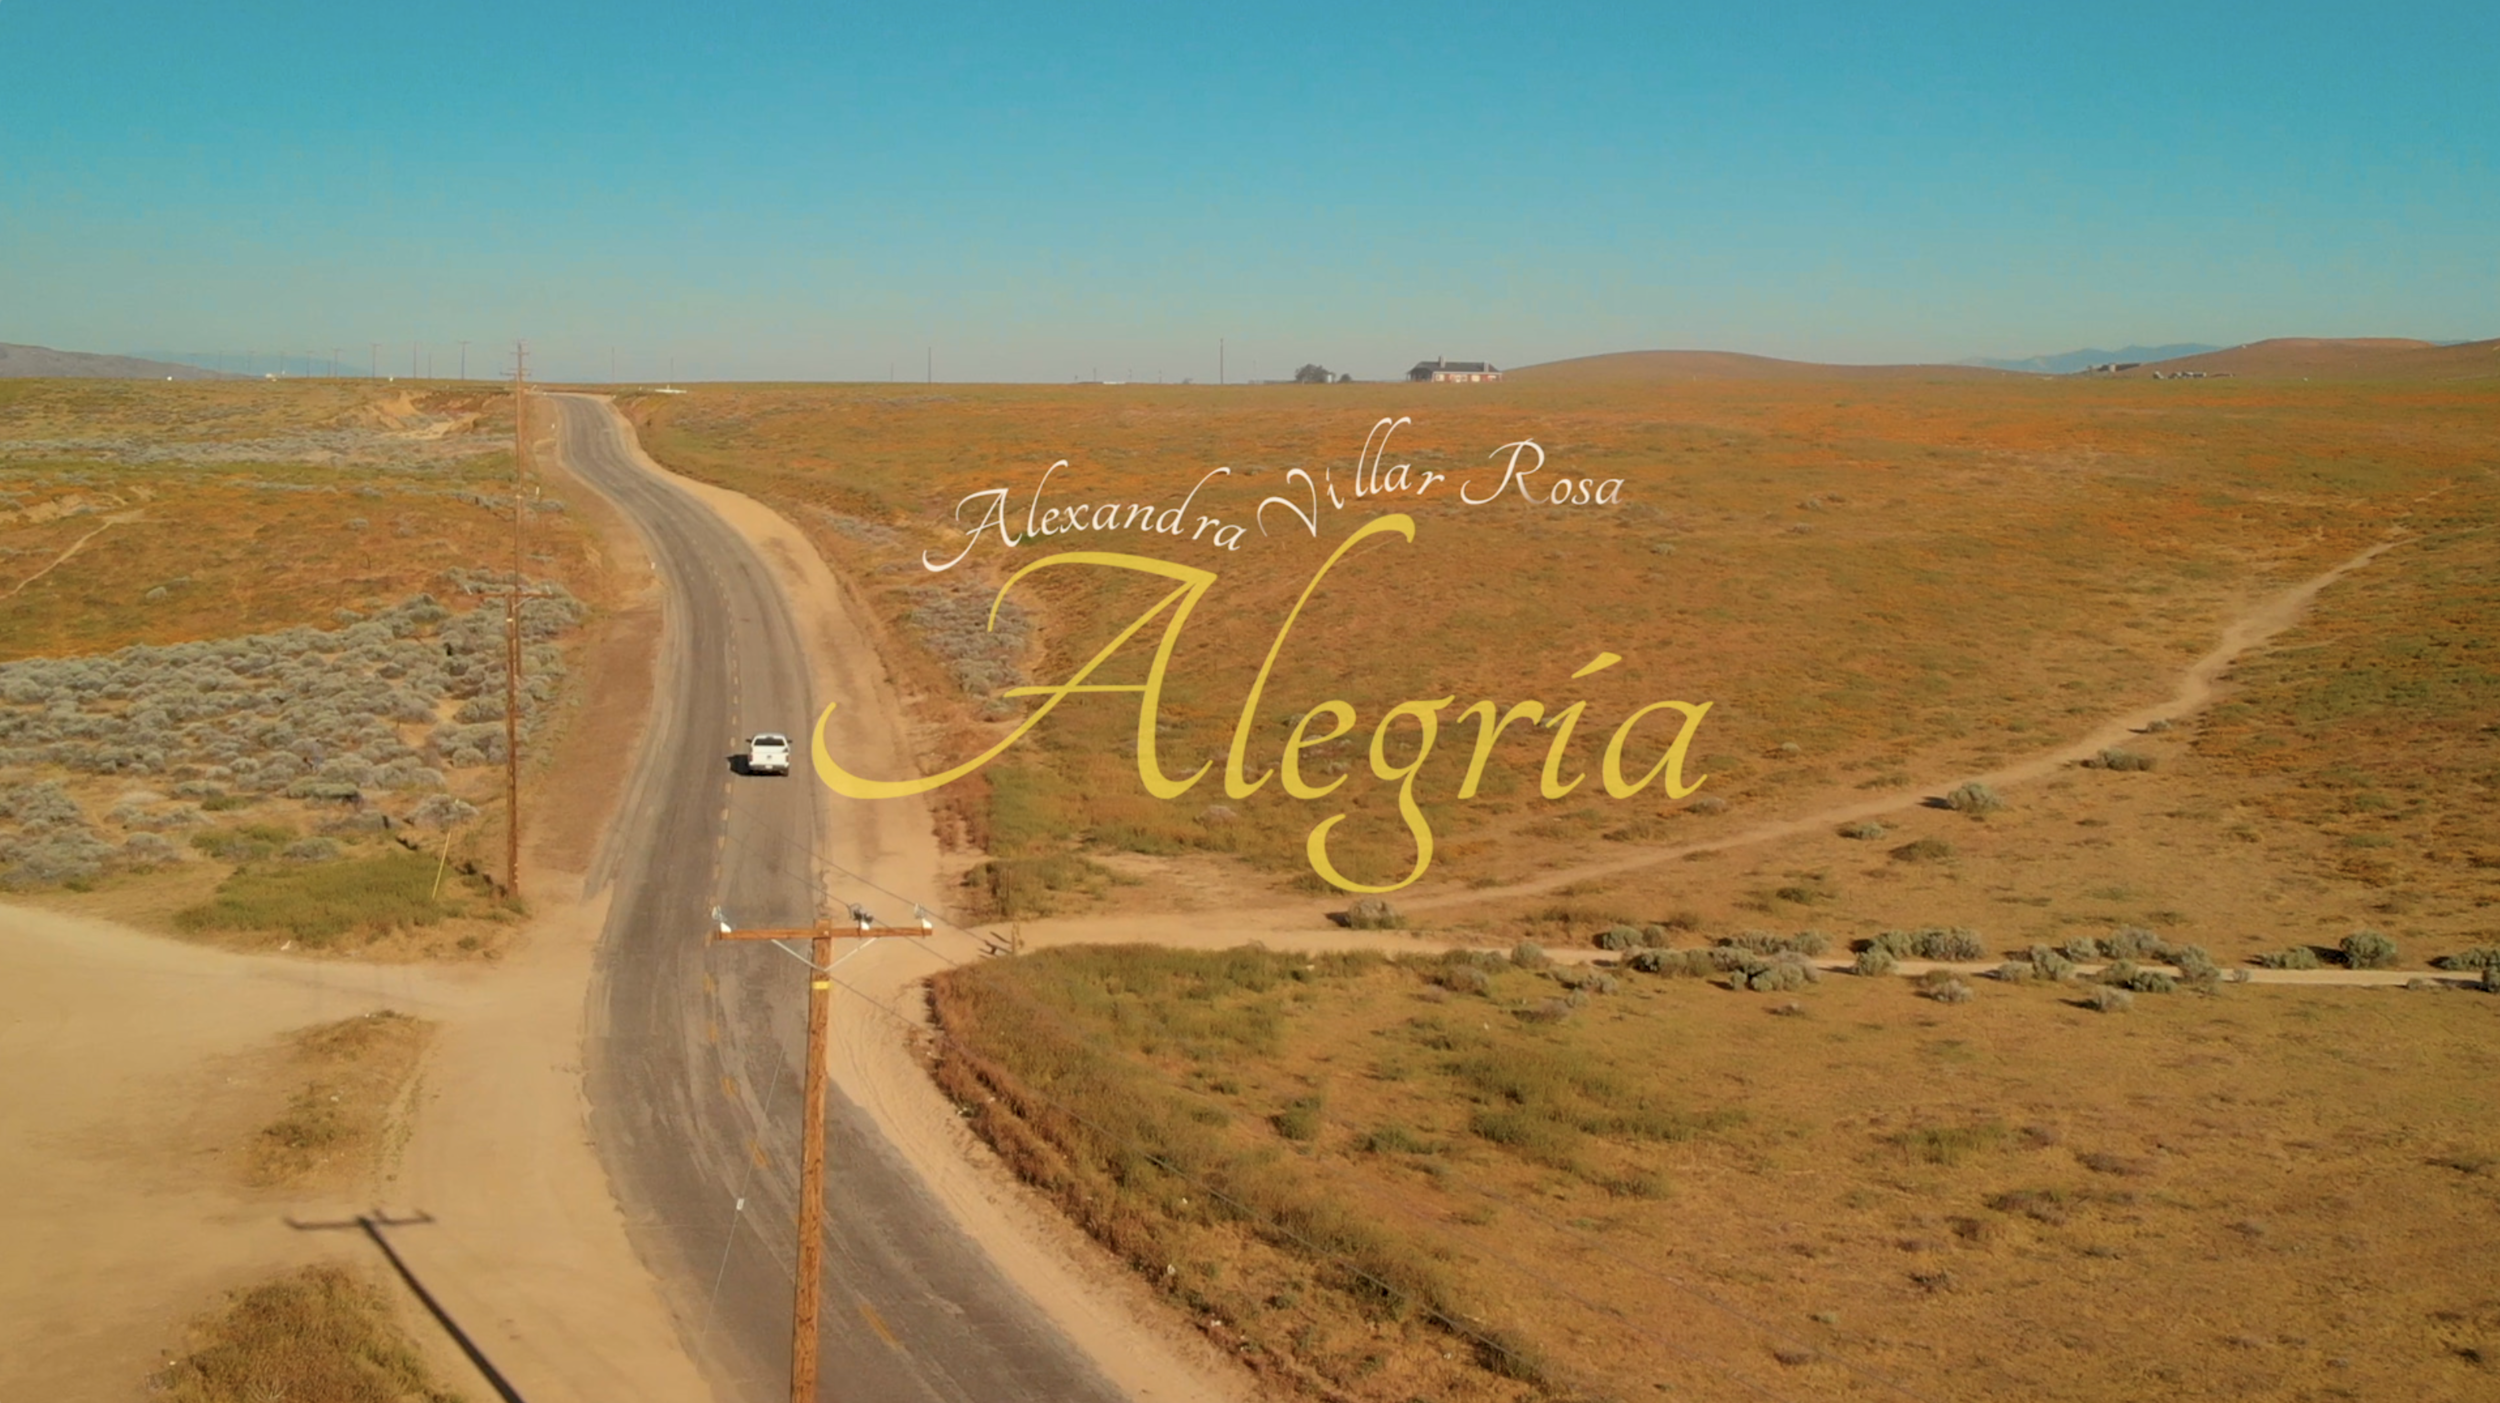 Music Video 'Alegria' Ft. Alexandra Villar Rosa